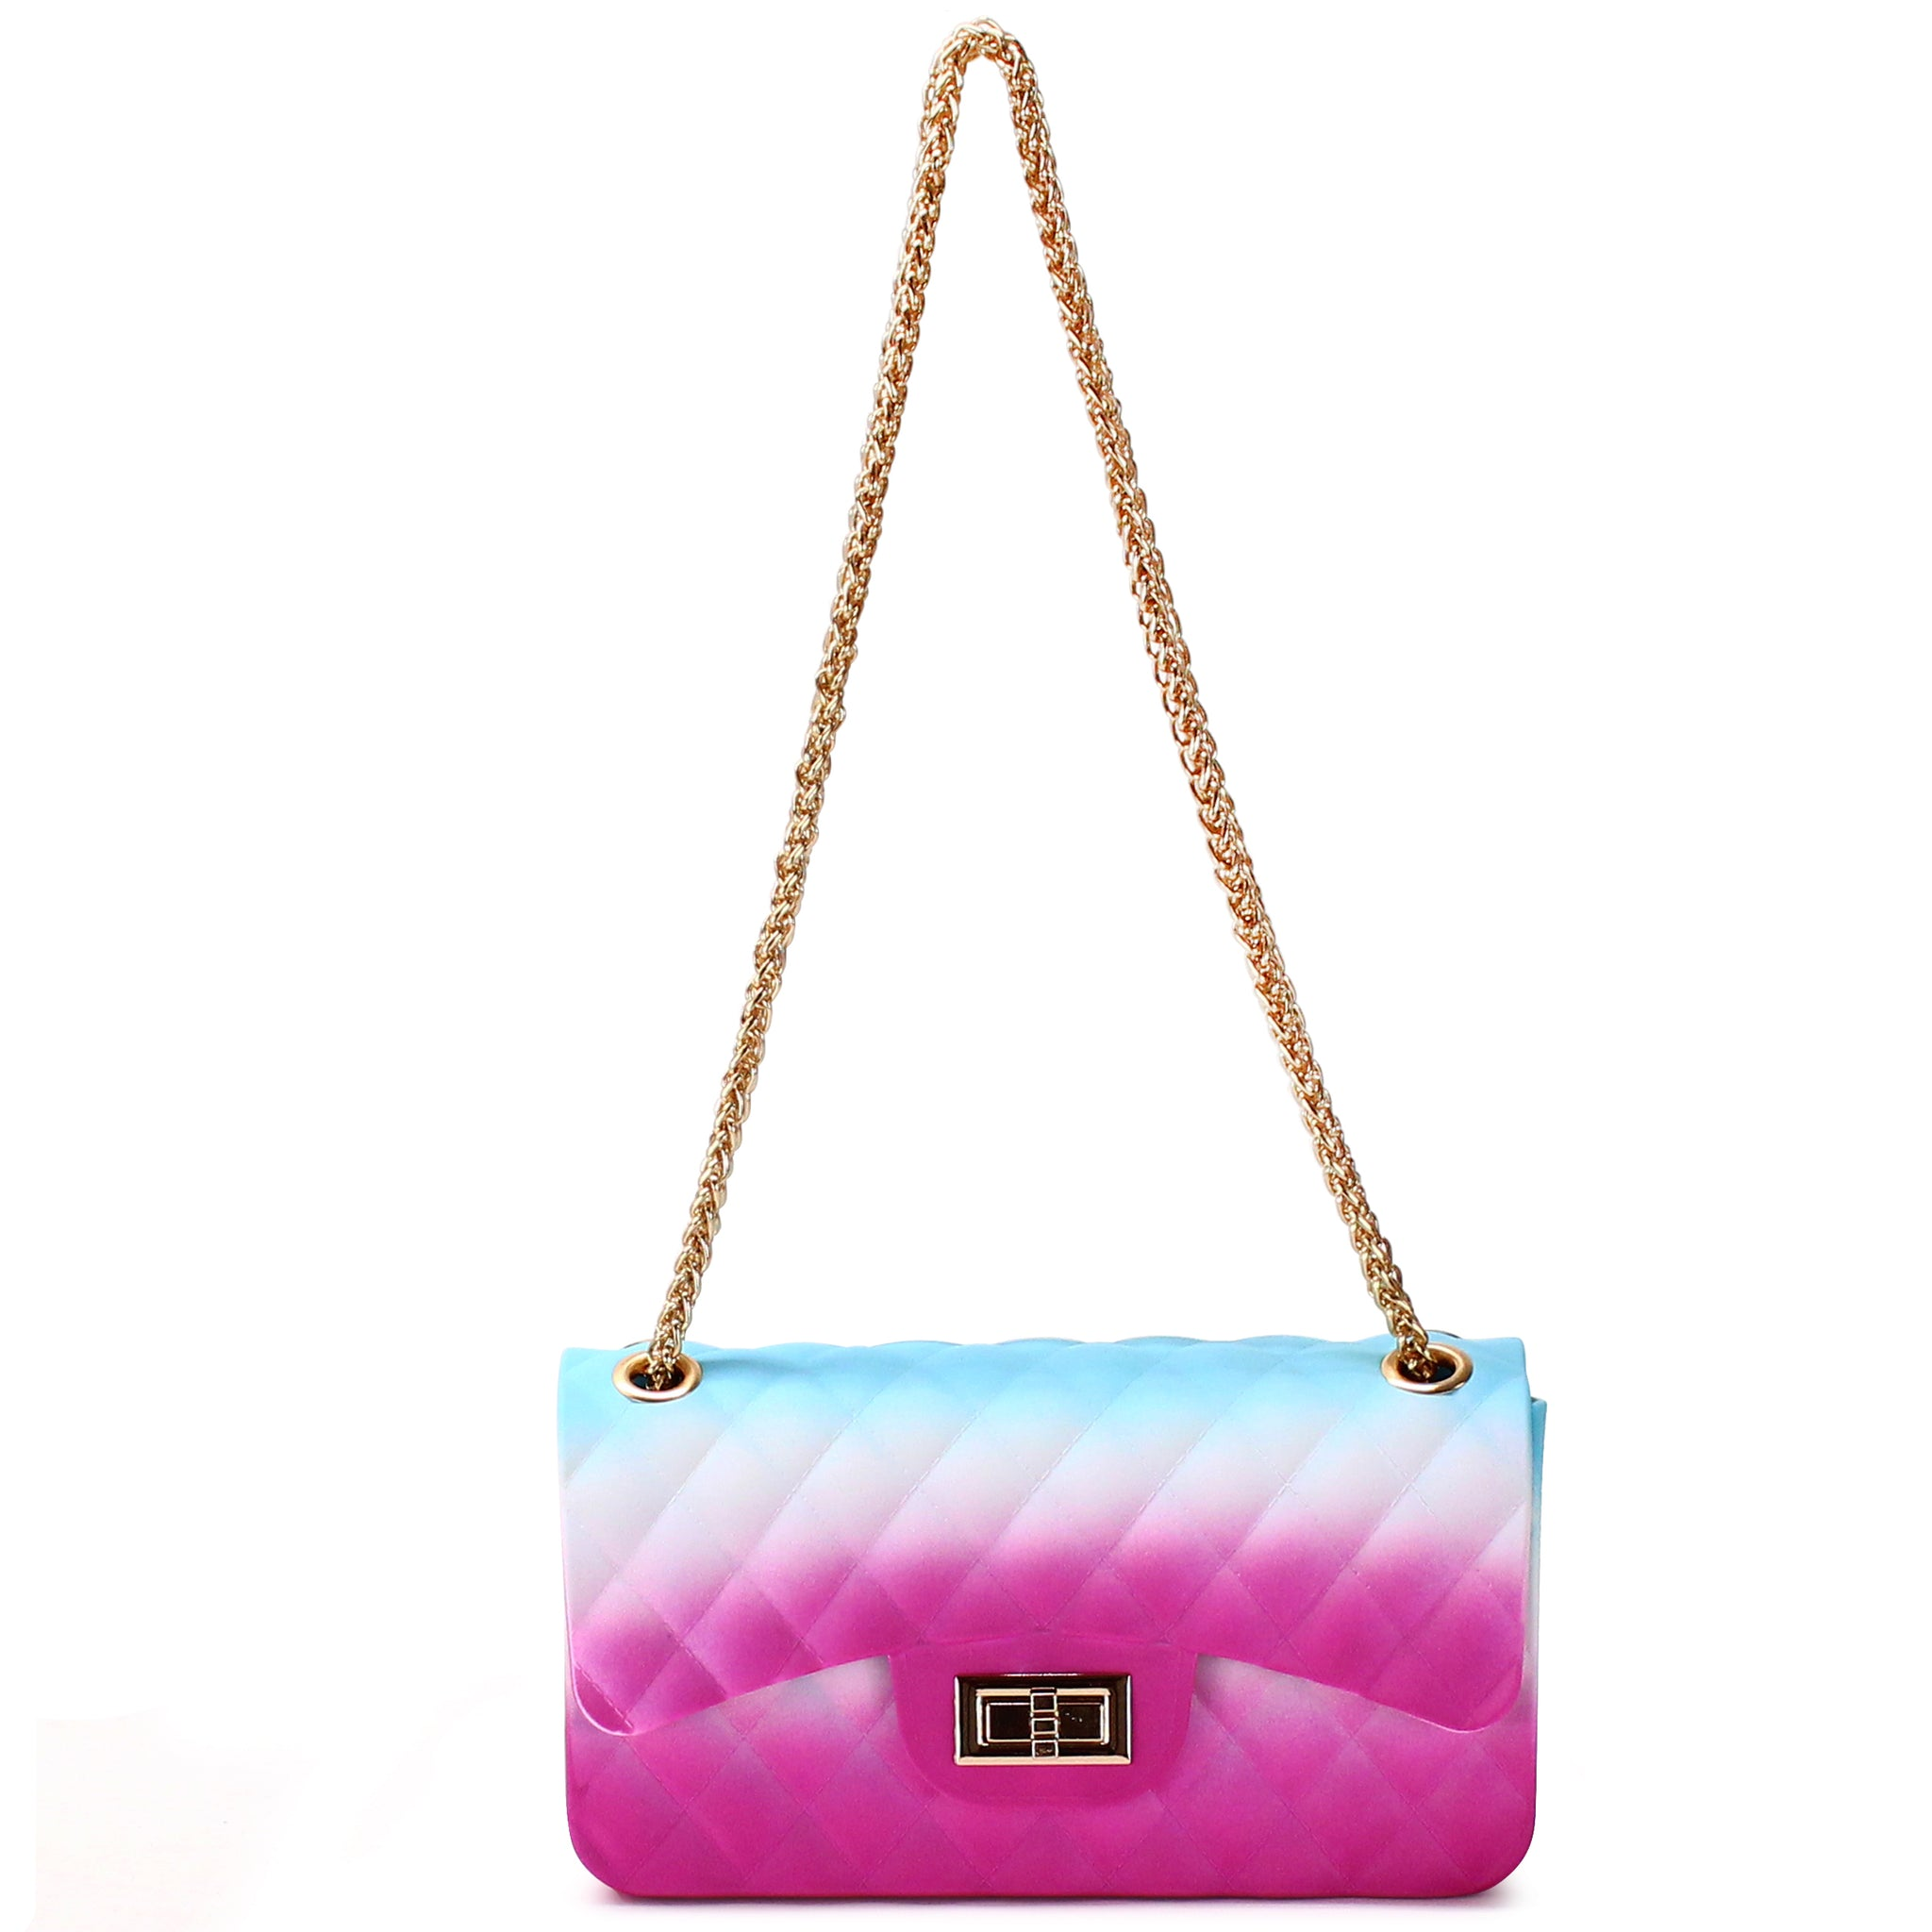 QUILTED RAINBOW SILICONE SHOULDER BAG WITH CHAIN STRAP - Jenuine Handbags